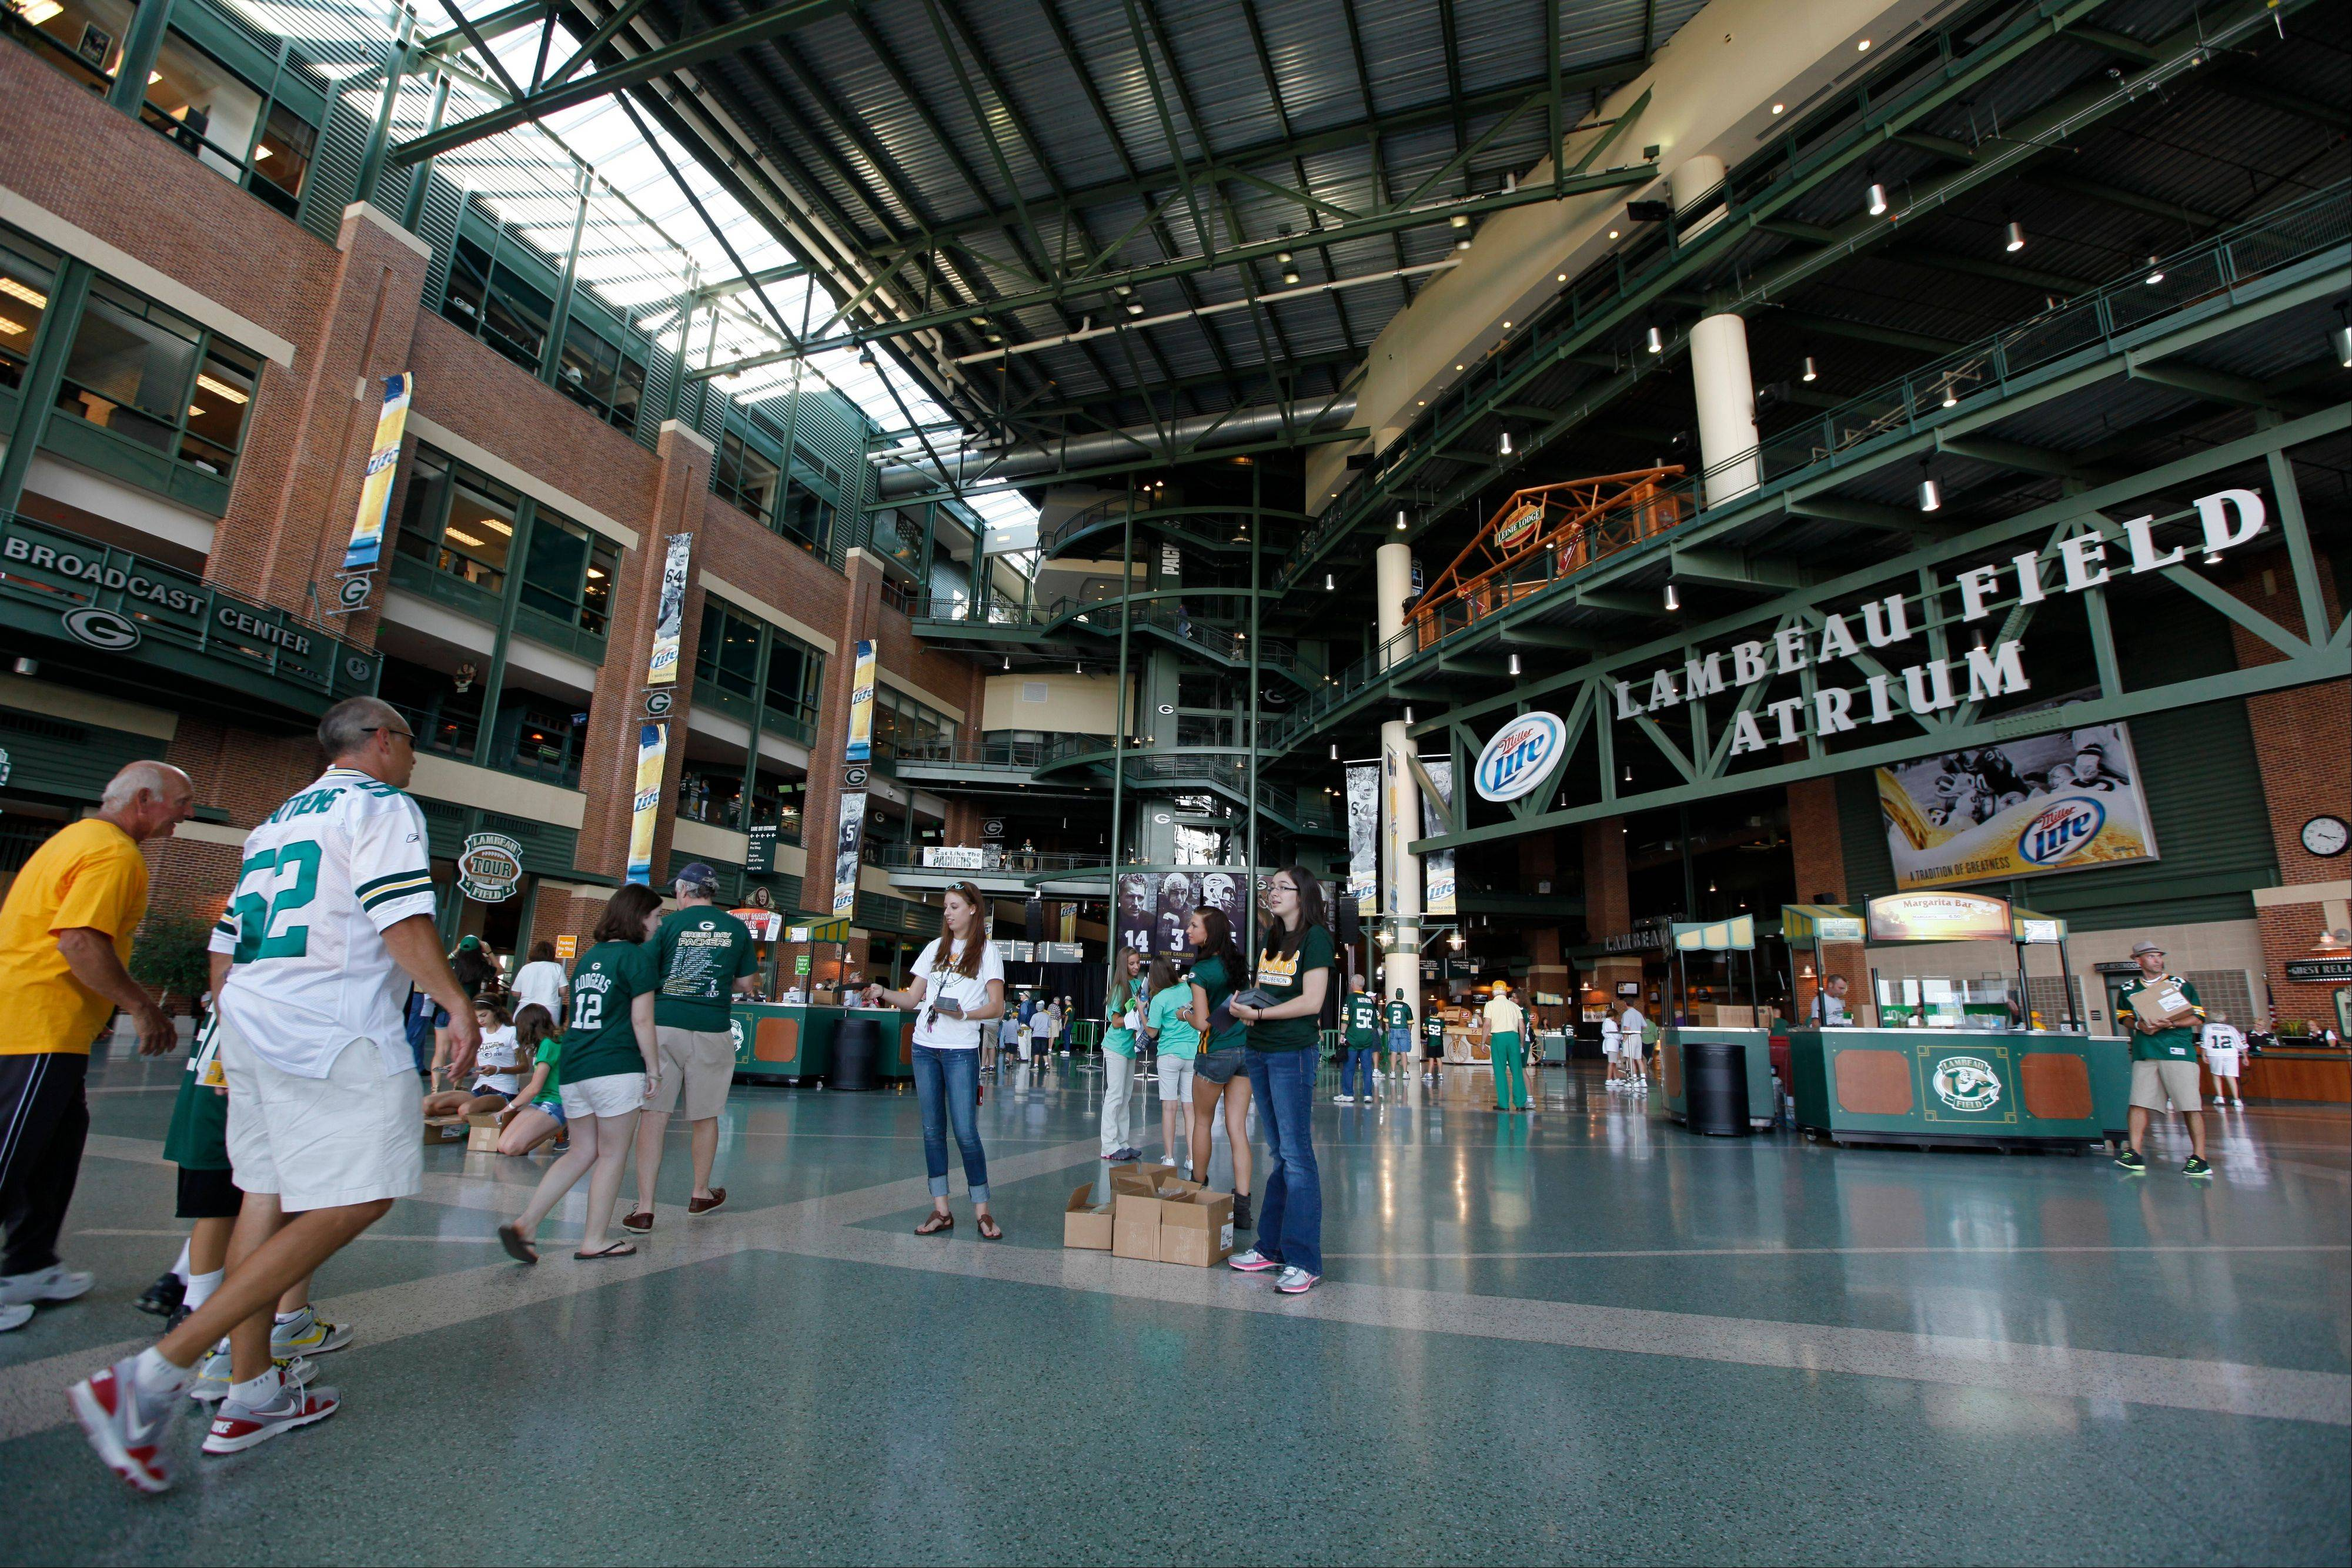 Fans walk through the atrium of Lambeau Field before an NFL preseason game in 2011. A tour of the stadium offers a peek behind the curtain where so much of professional football's history has been written.